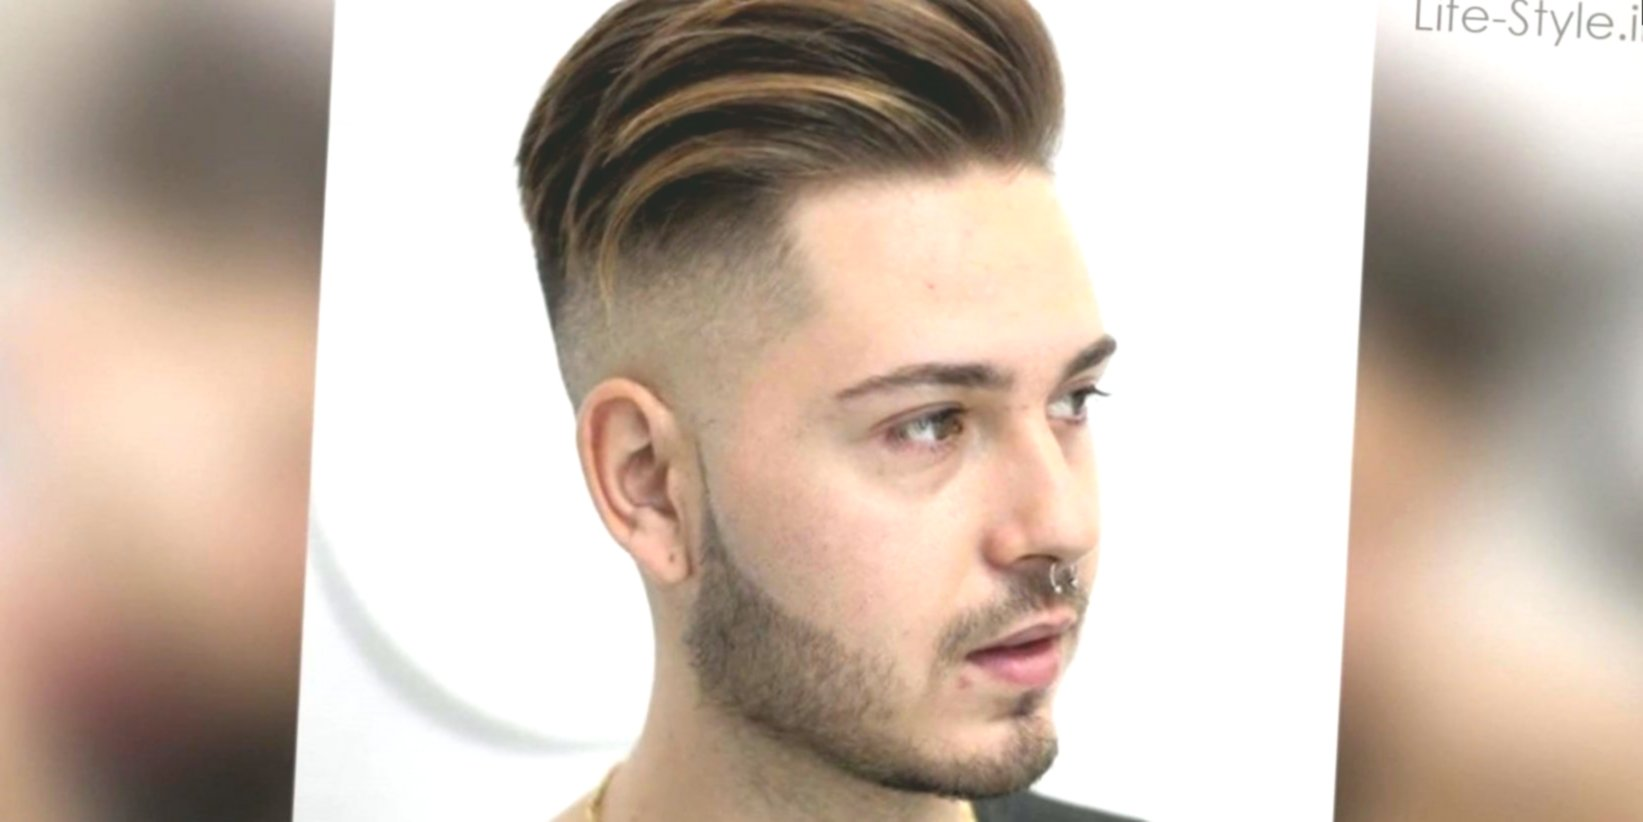 Nice Men's Haircut 2018 Image - Awesome Men's Haircut 2018 Collection